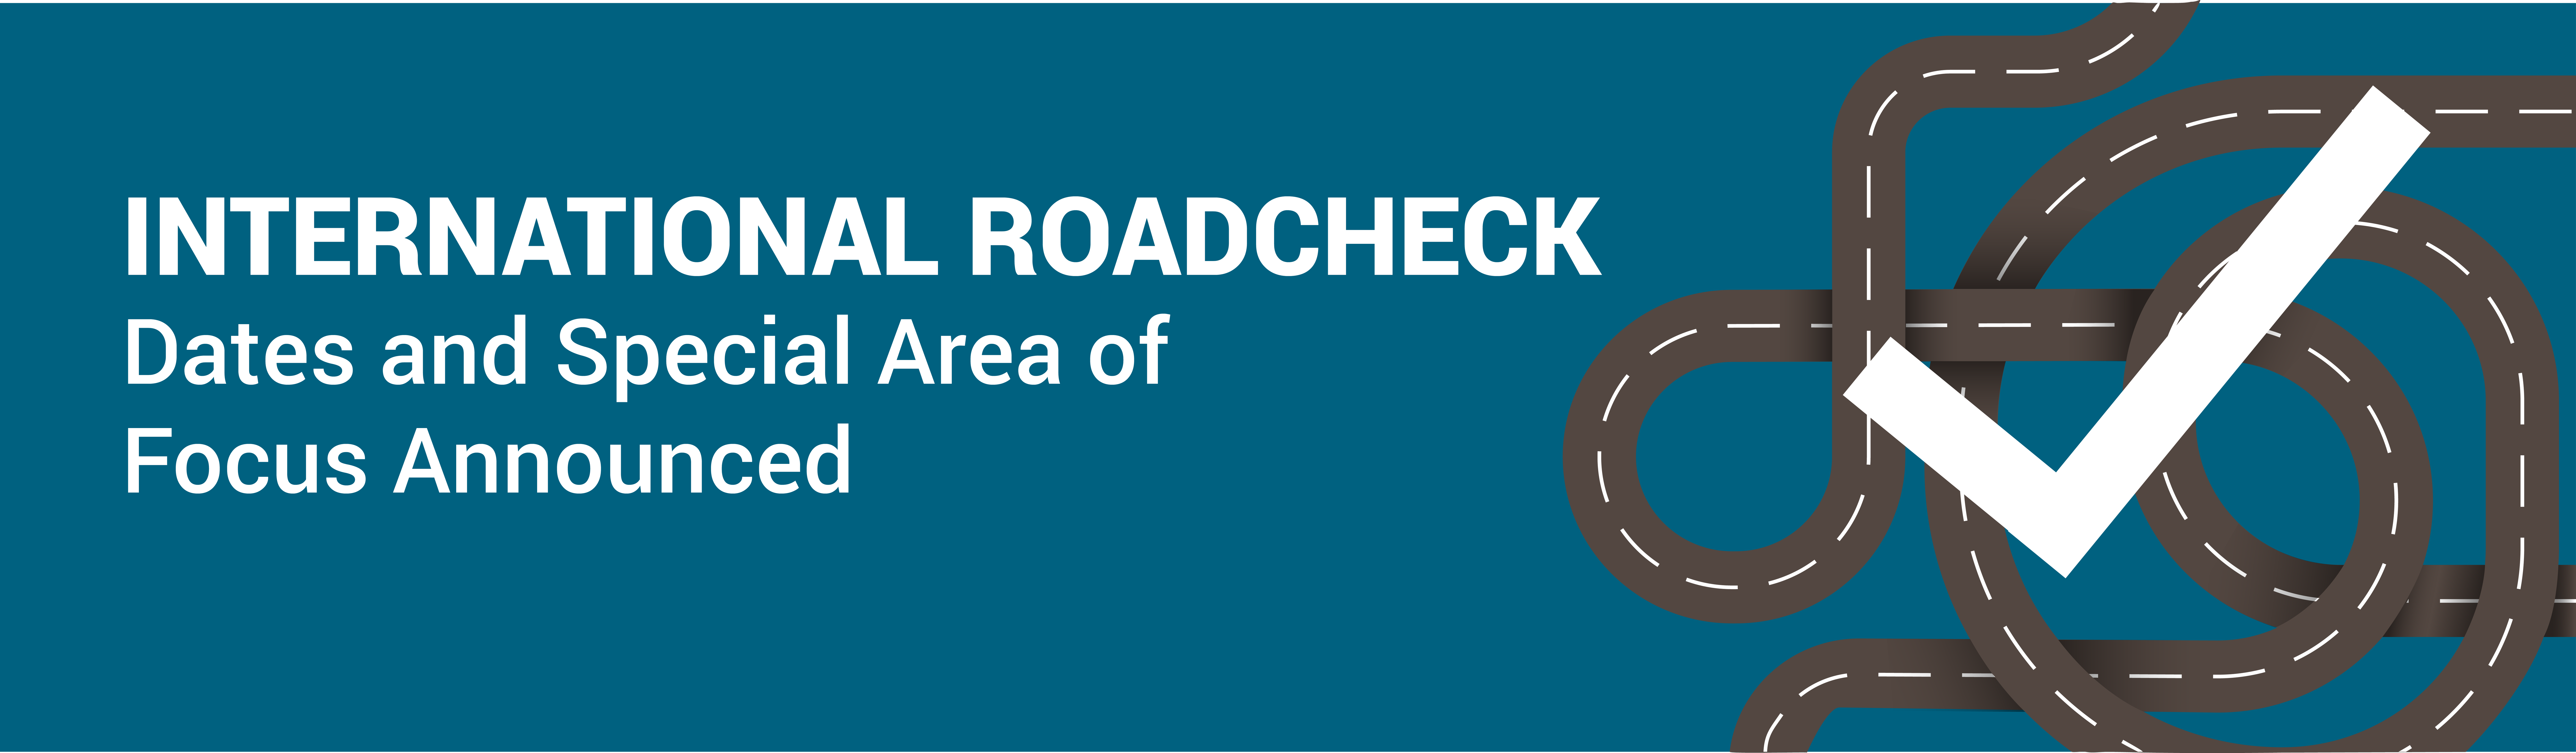 International Roadcheck 2018